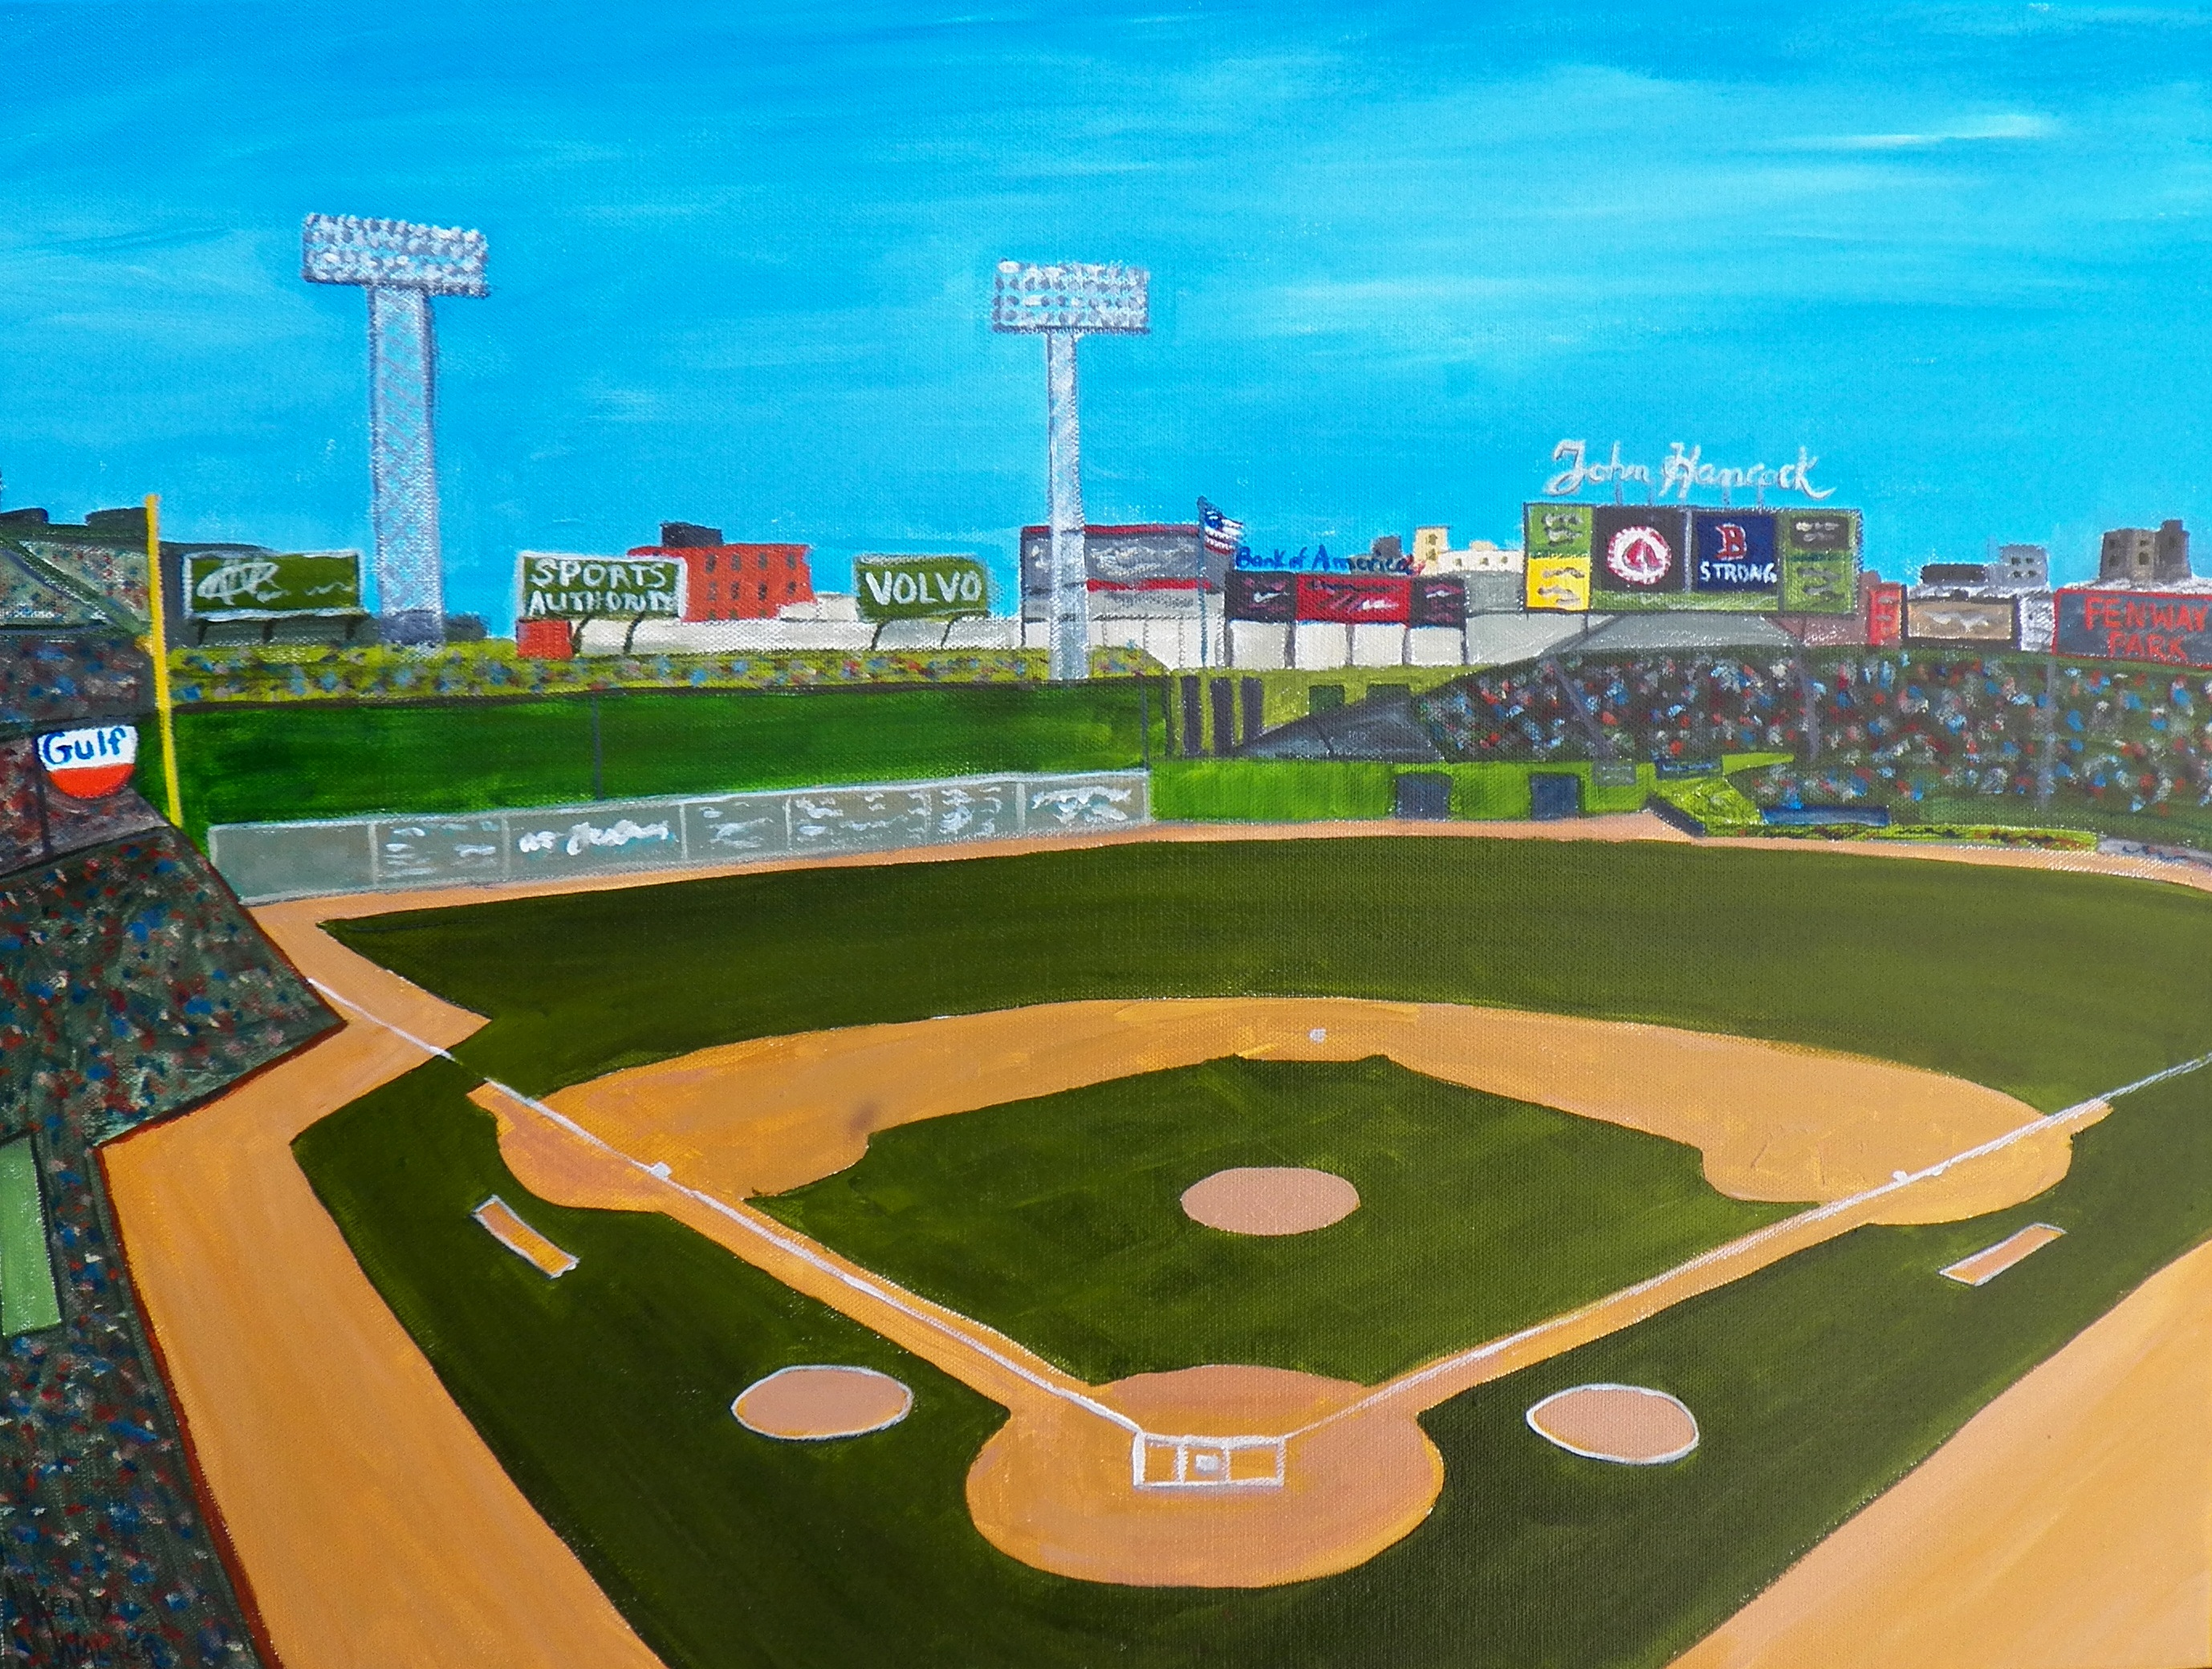 fenway park and parks - photo #19